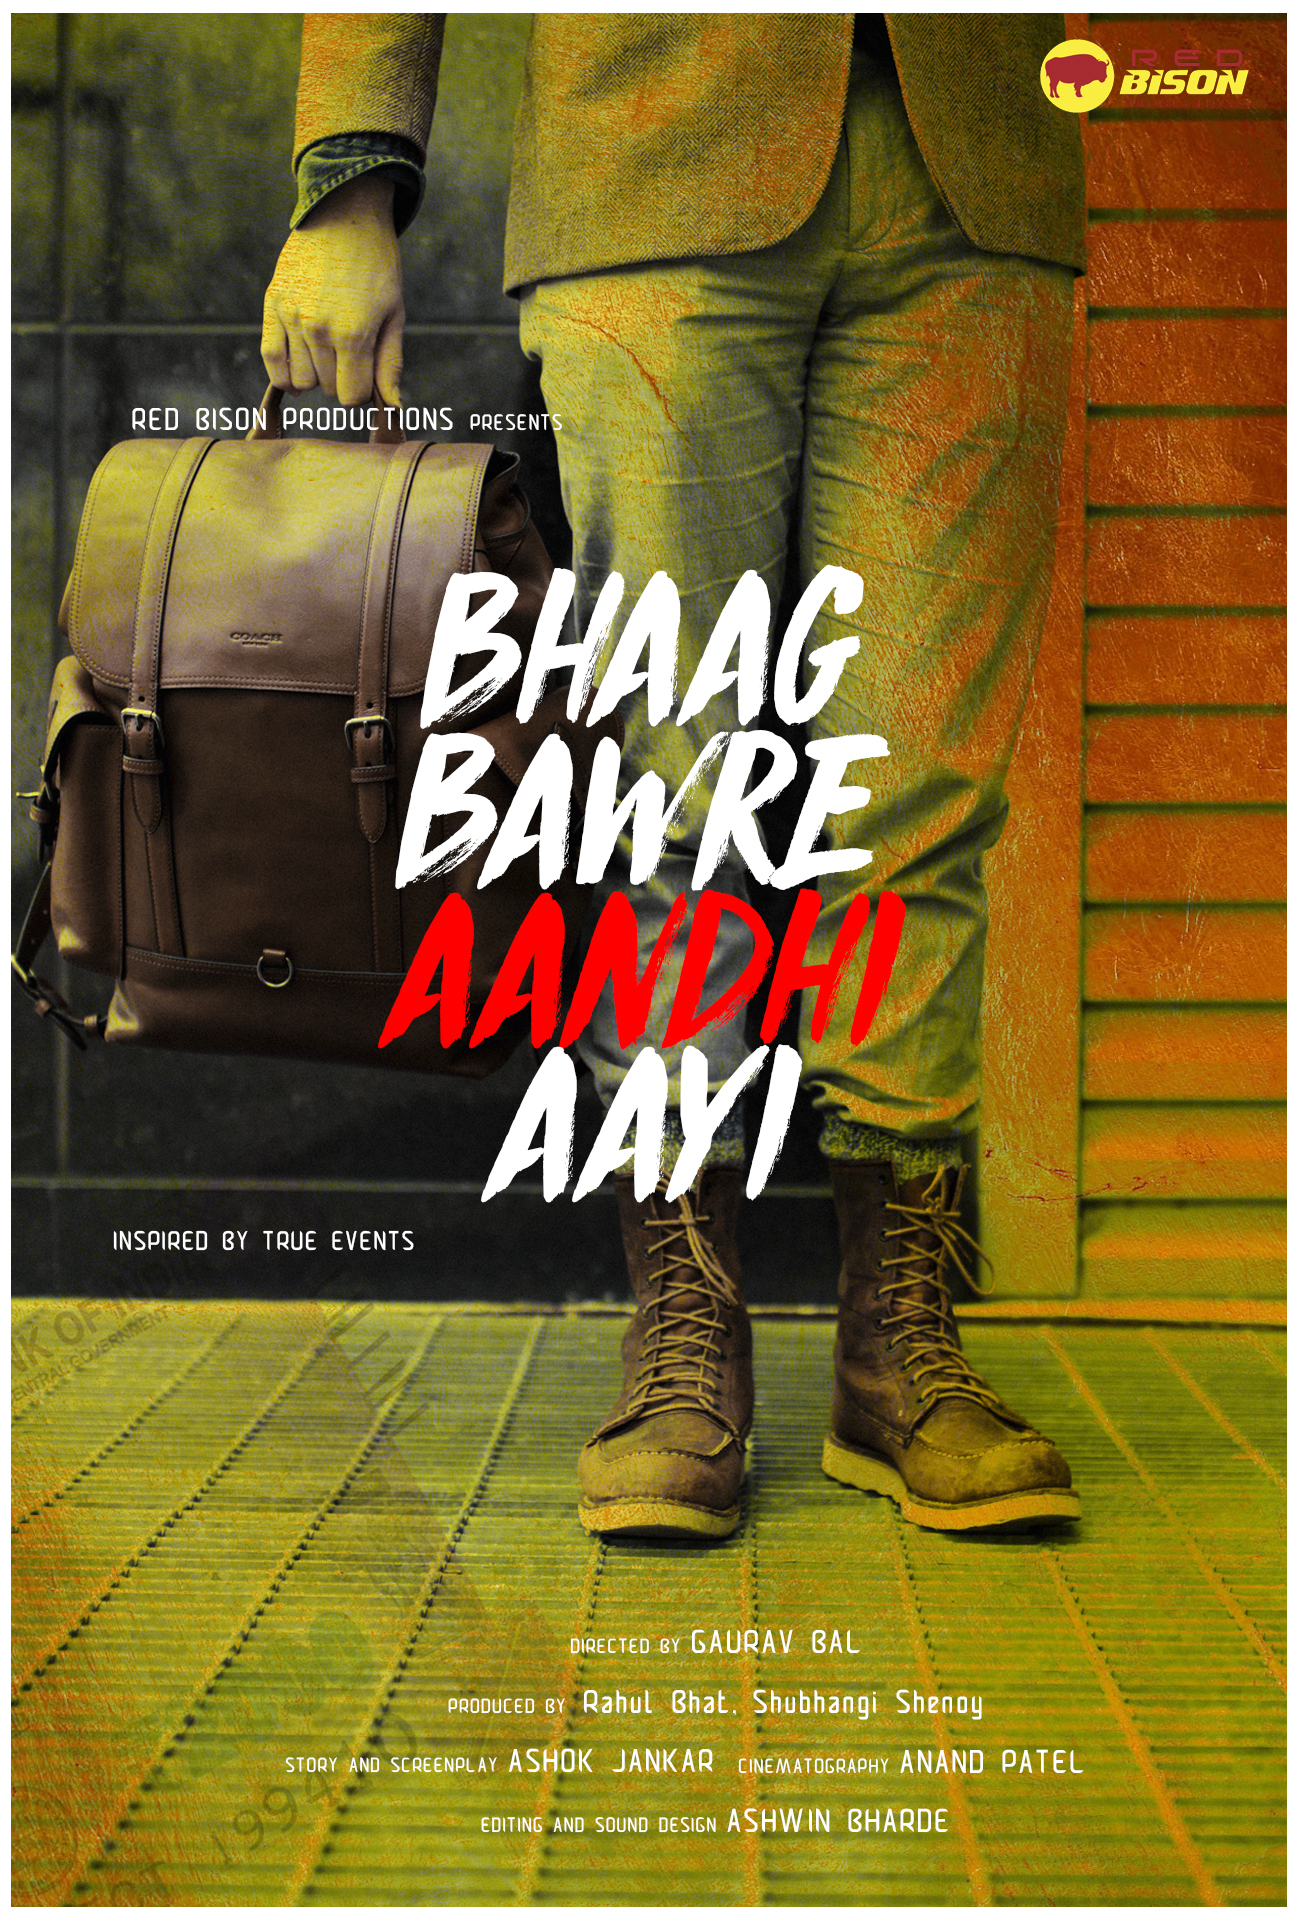 bhag bhosdi aandhi aayi movie